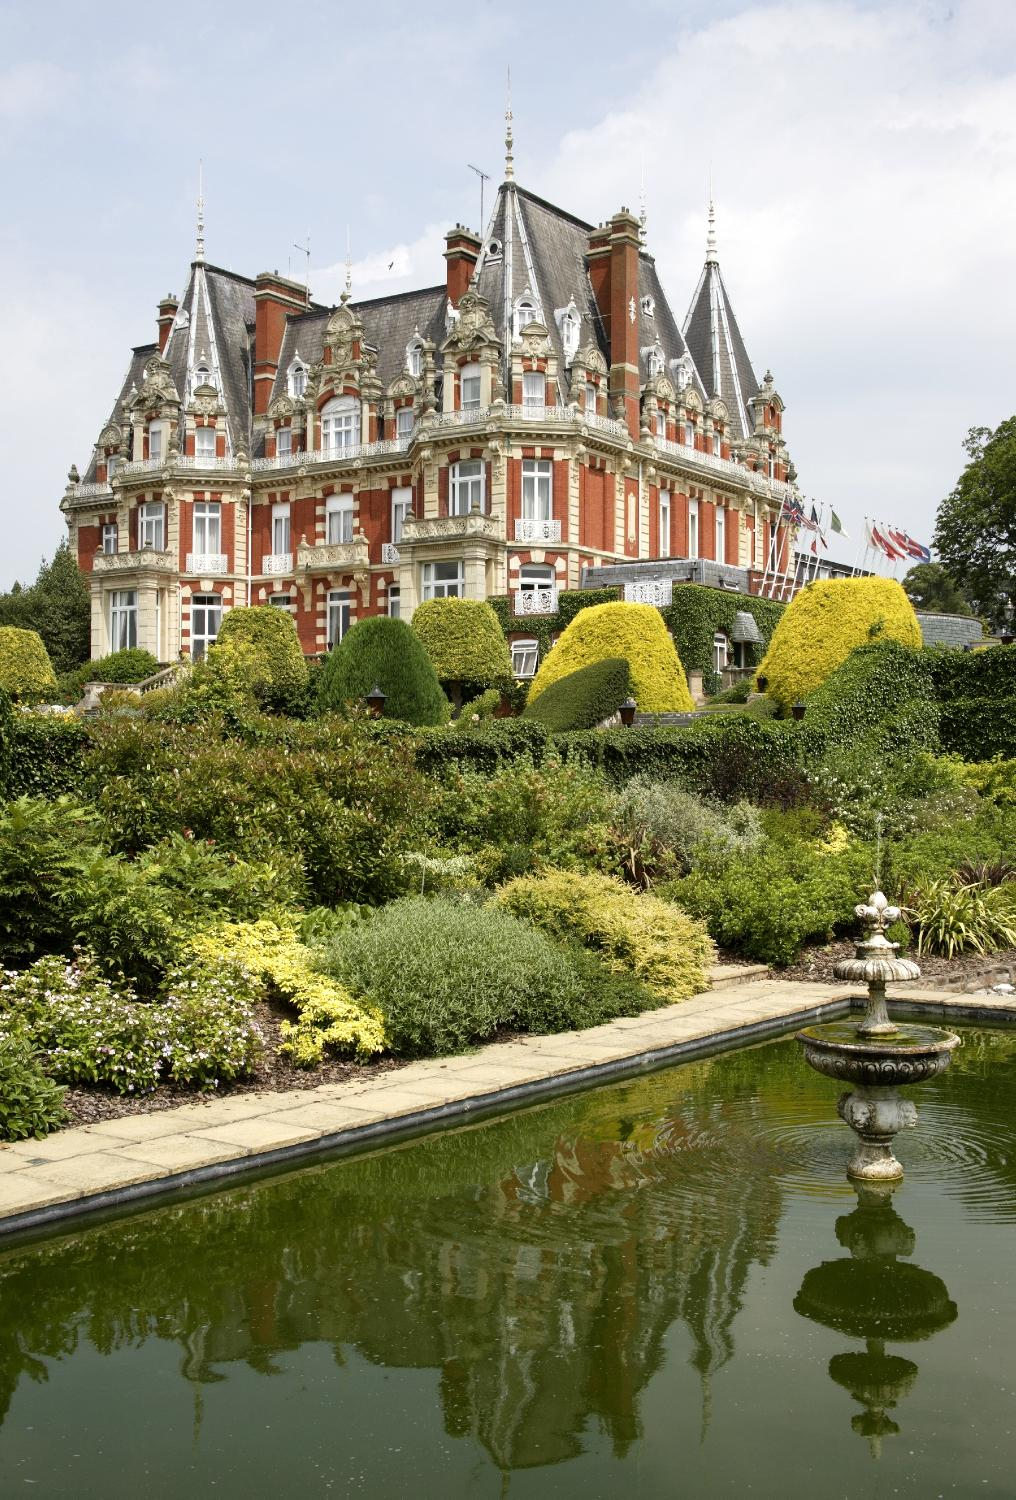 Chateau Impney Hotel & Exhibition Centre